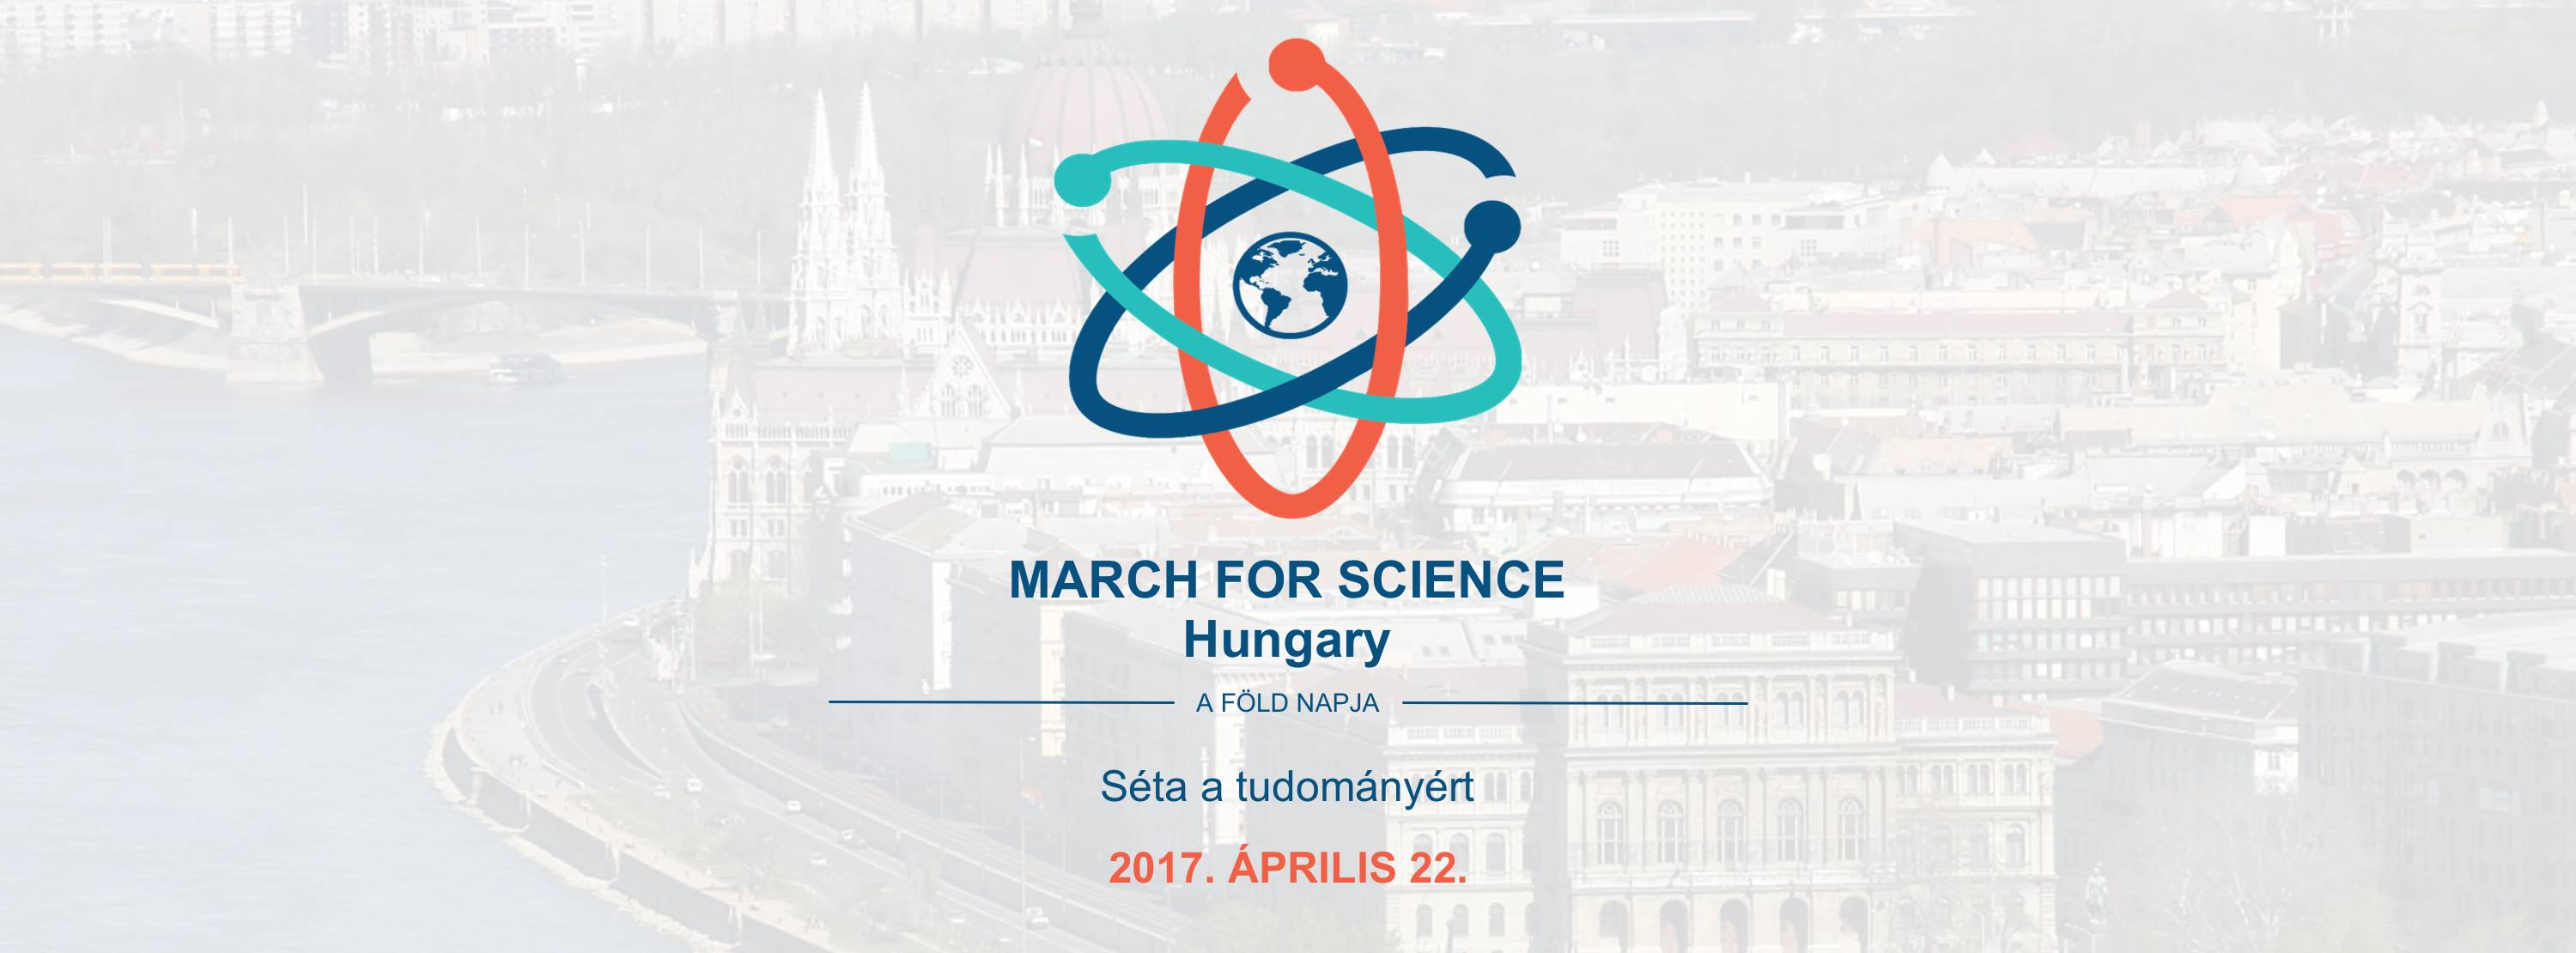 march_for_science_logo.jpg